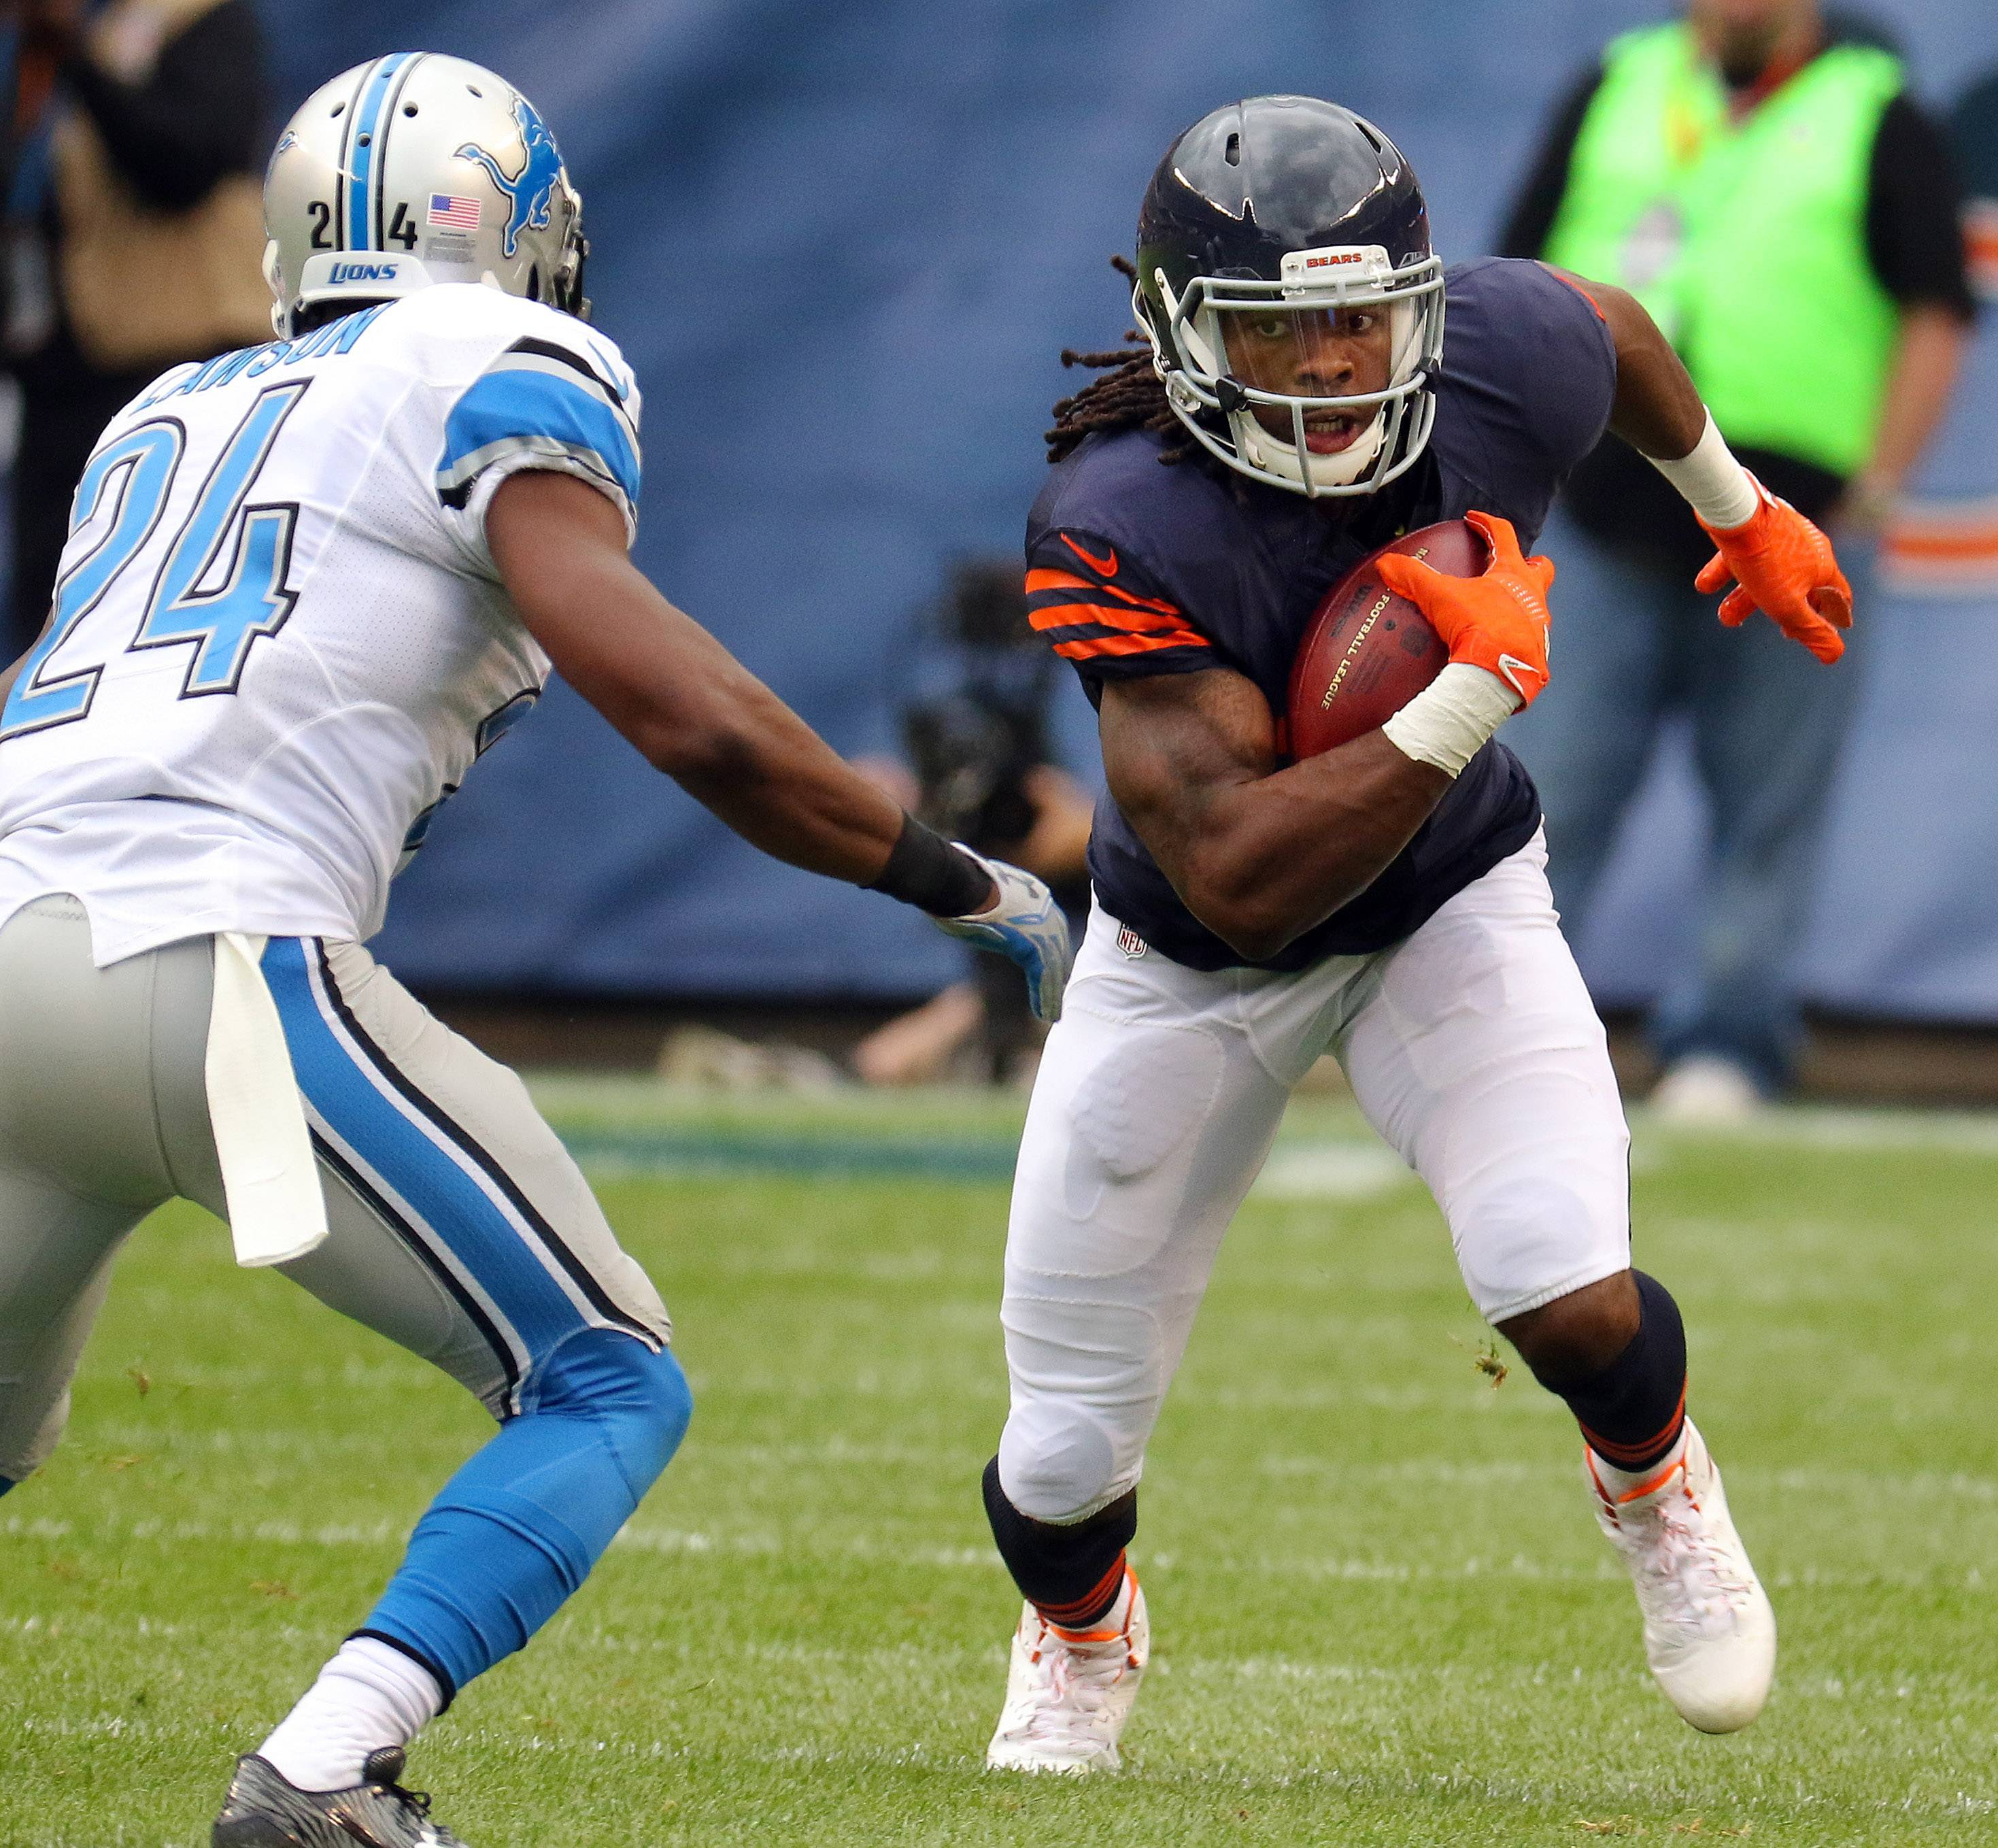 Bears' wide receiver White still limited by injury